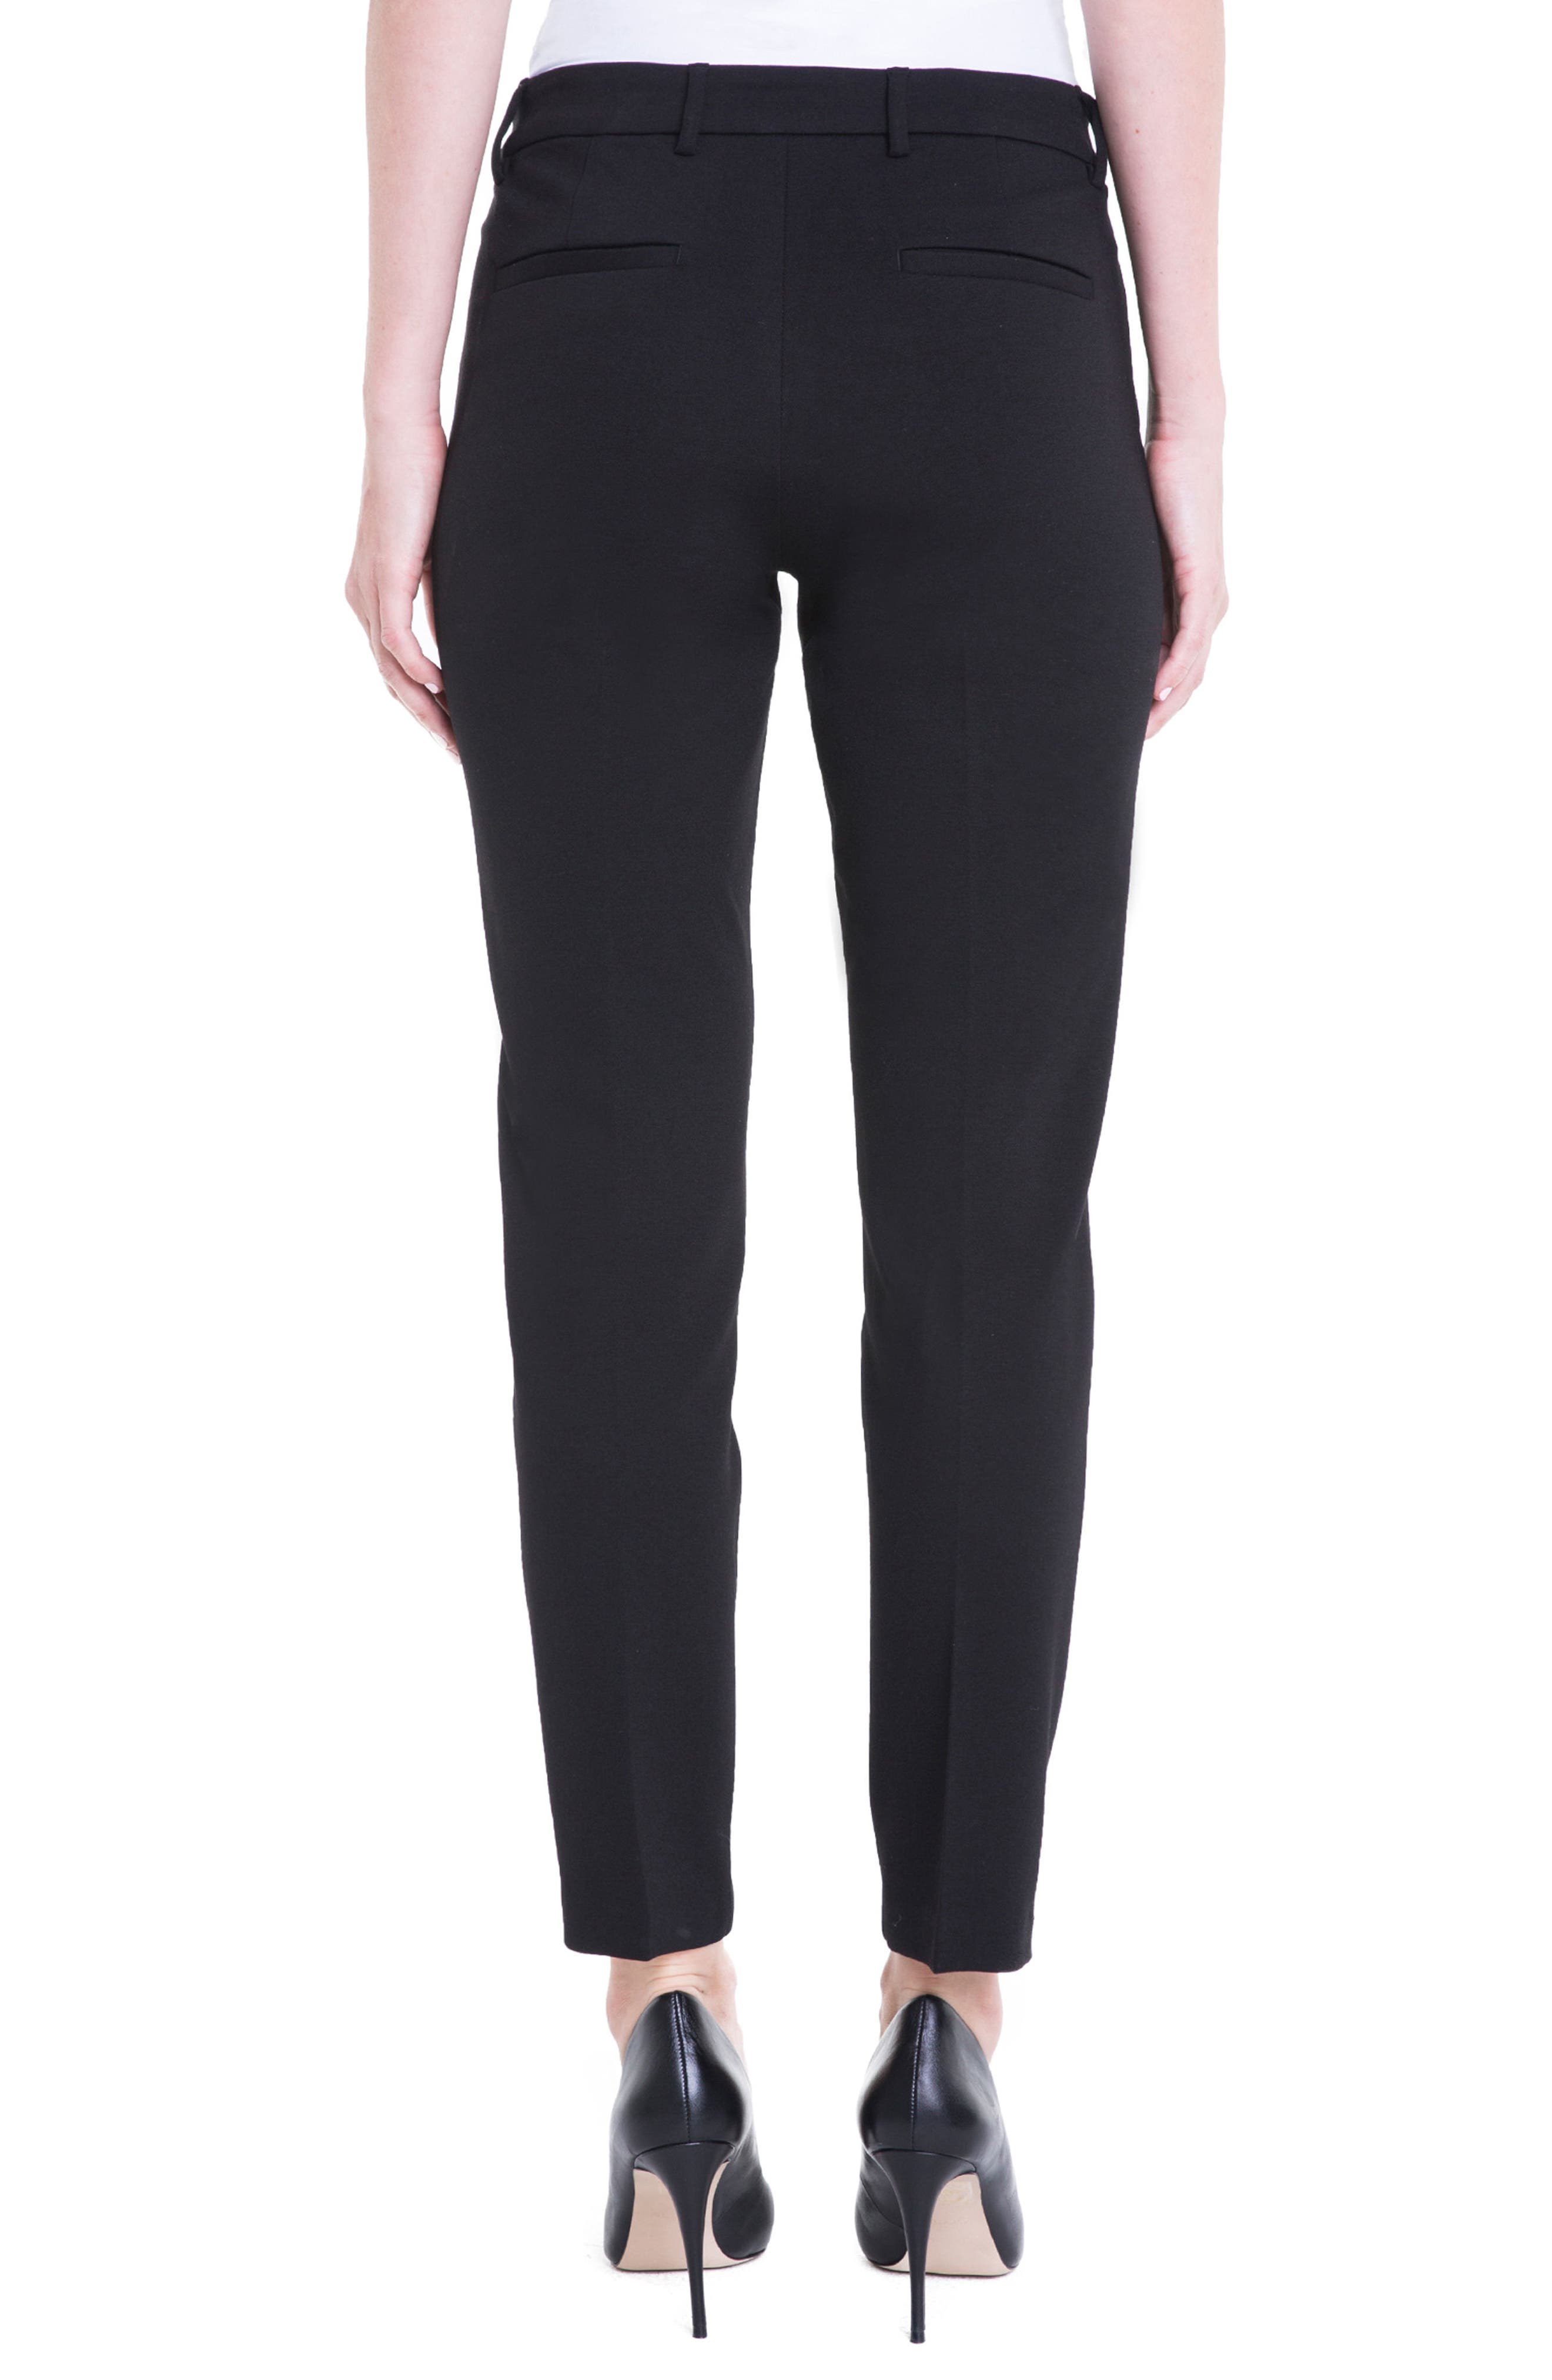 LIVERPOOL, Kelsey Knit Trousers, Alternate thumbnail 2, color, BLACK